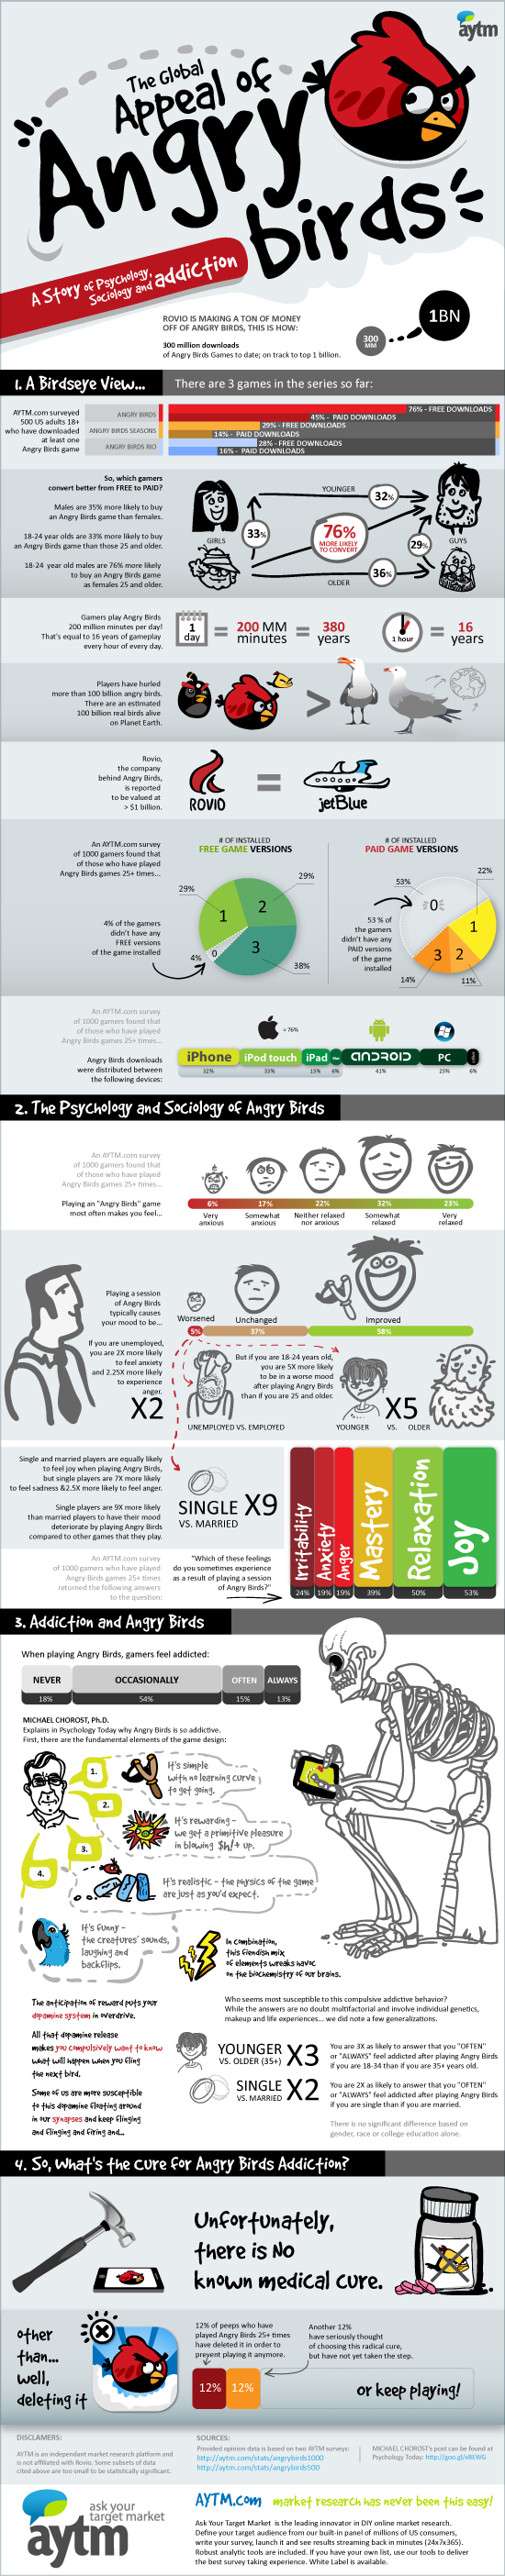 [Infographic] Angry Birds Addiction